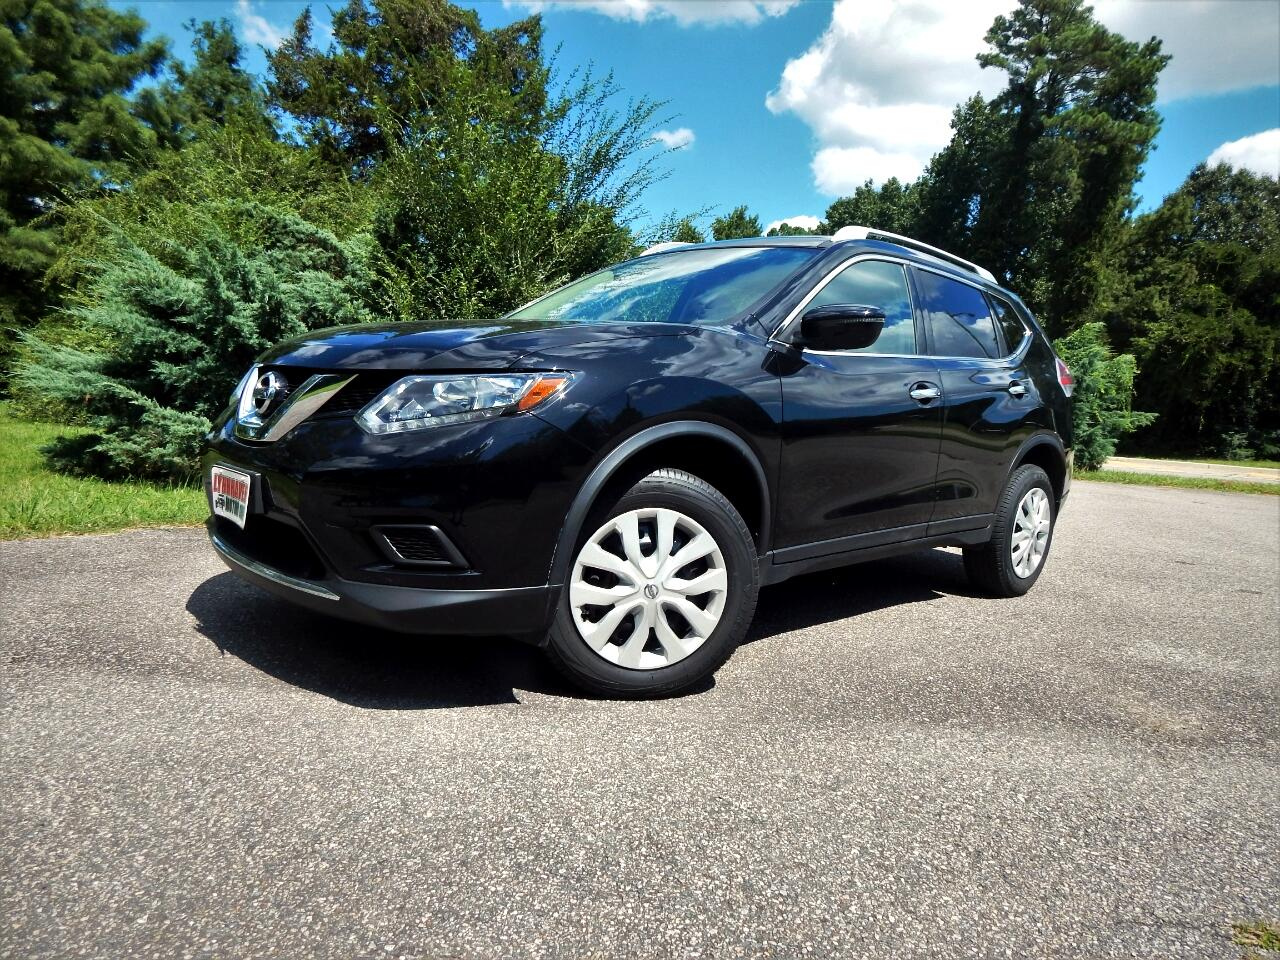 2016 Nissan Rogue S Awd w/ Rear Camera,Bluetooth,1 Owner,19k Mis!